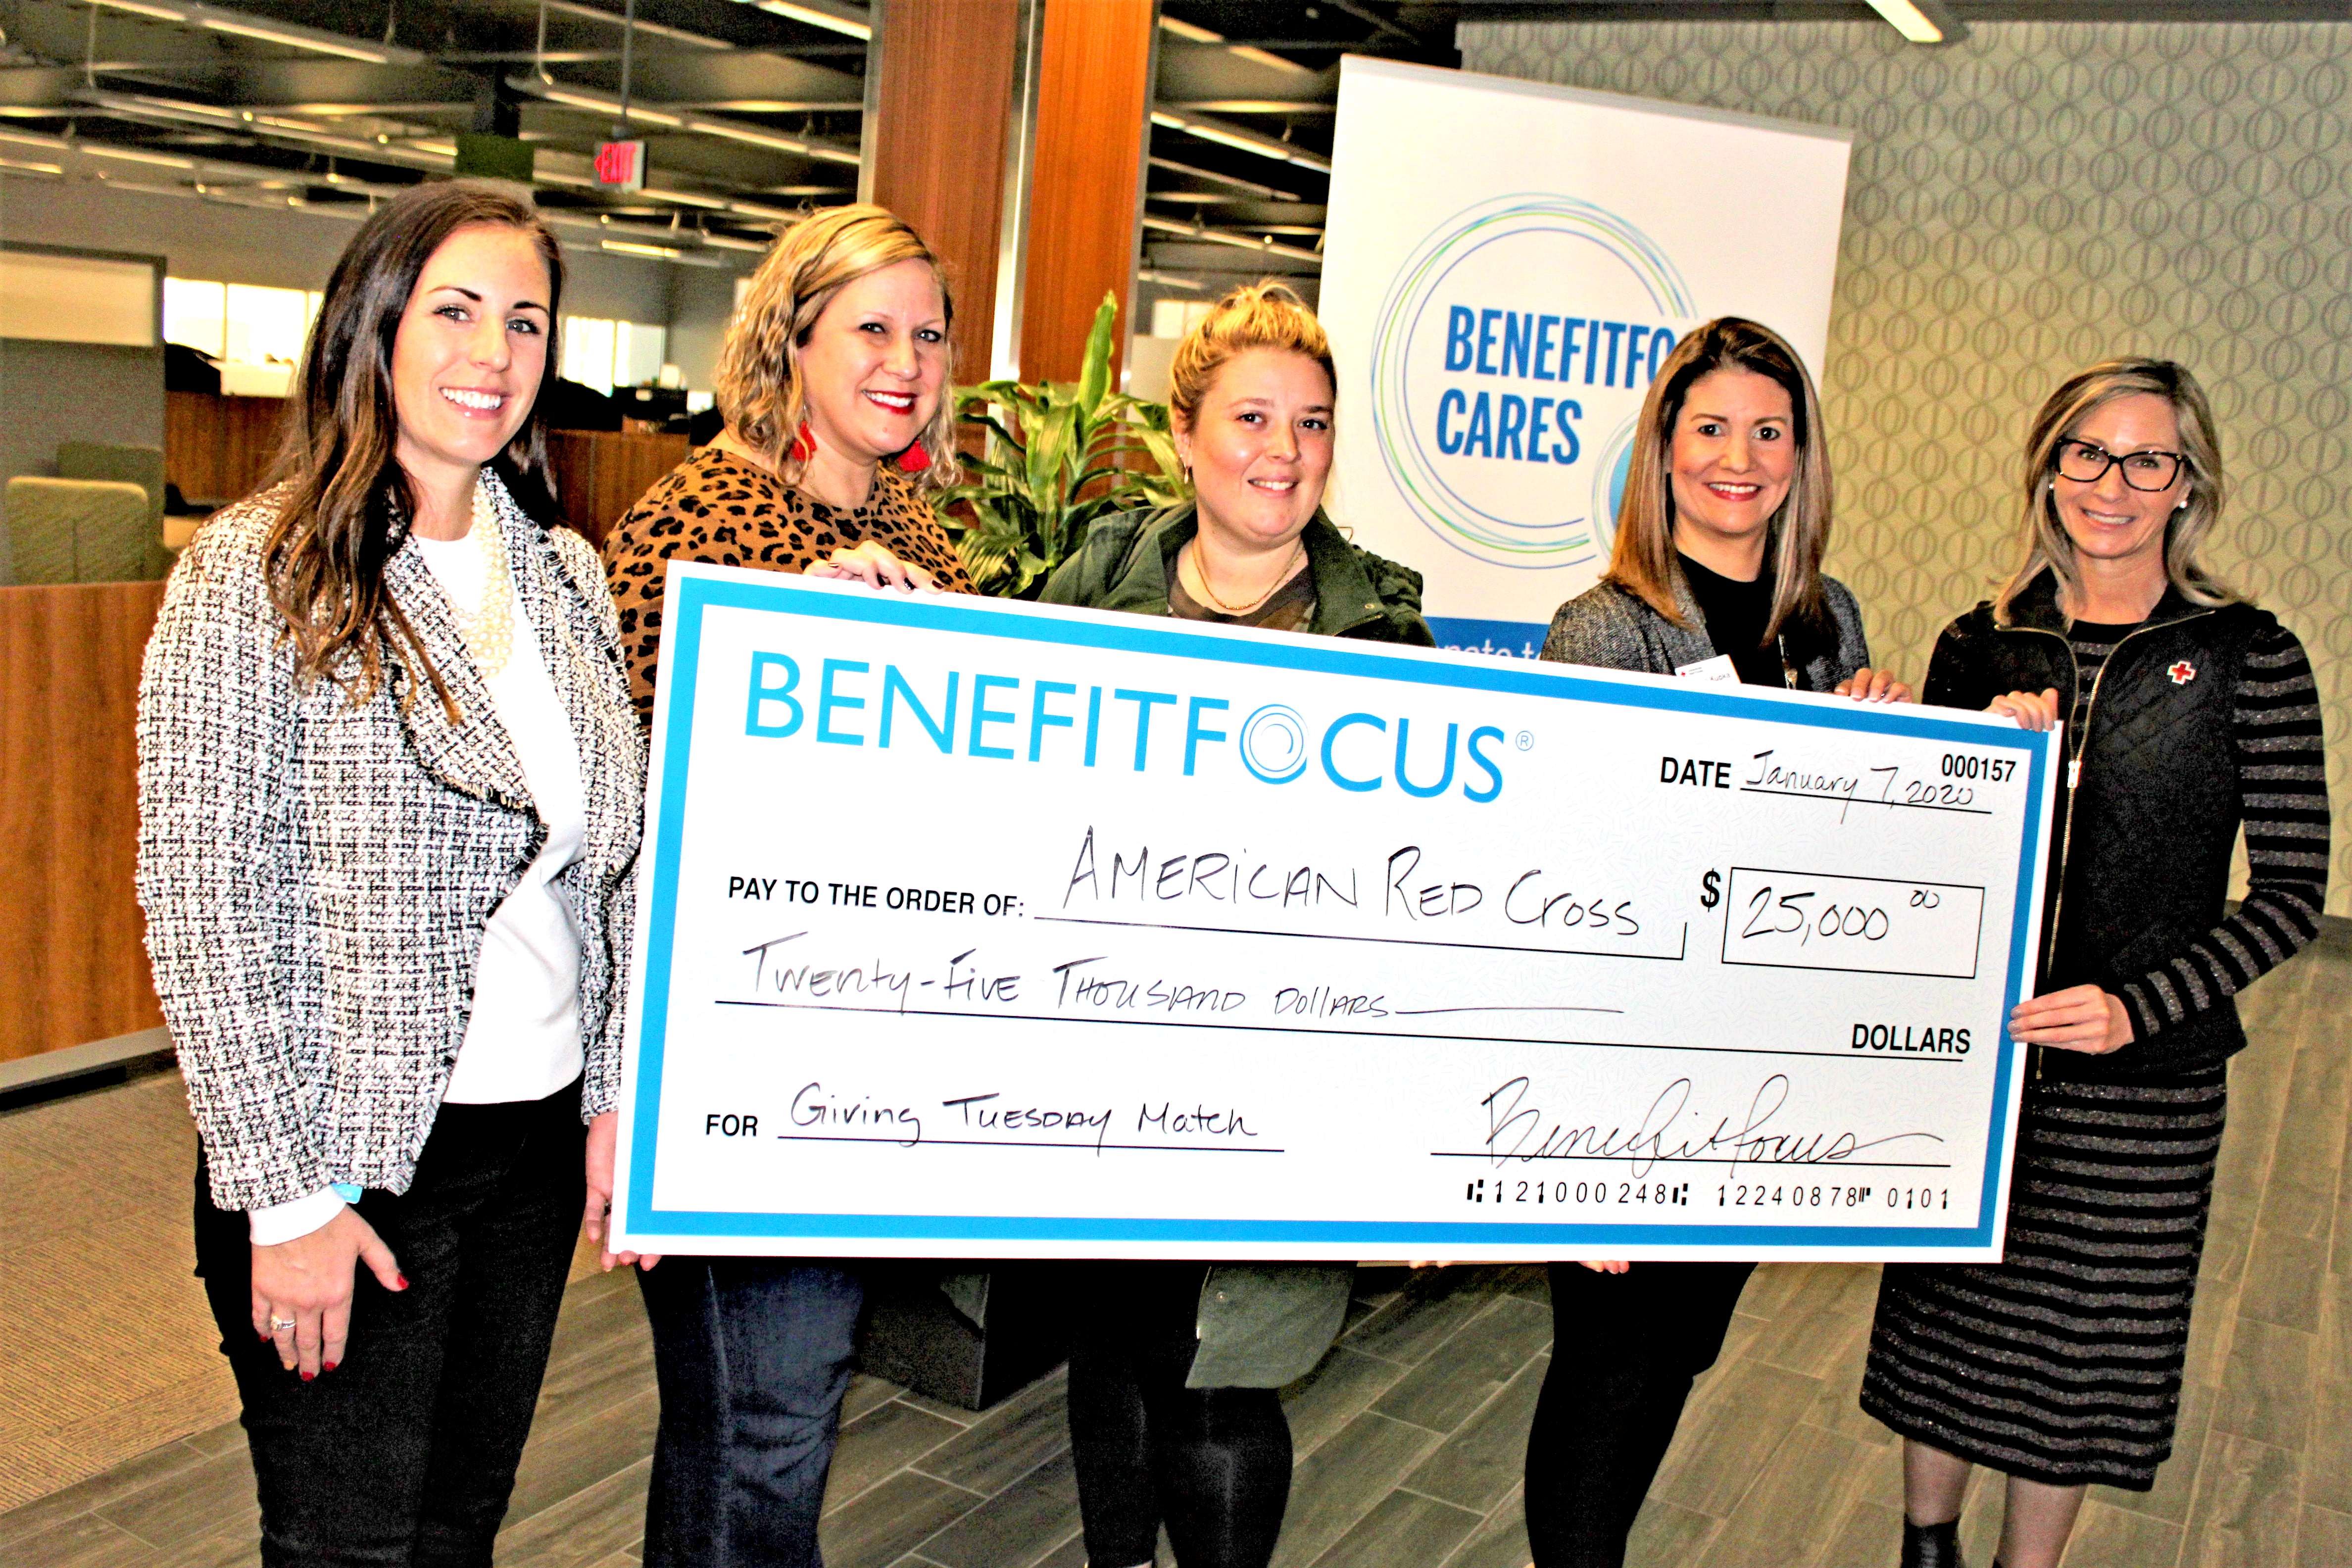 Earlier this month, Benefitfocus presented a check for $25,000 to the Palmetto Region of the American Red Cross in relation to the company's Giving Tuesday match incentive. For their 2019 Holiday Giving Campaign, Benefitfocus stepped up as a partner to match gifts given on Giving Tuesday, up to $25,000. Pictured are: Cate Bates, Demand Generation Manager, Benefitfocus; Ashley Hopkins Furr, Learning & Development Specialist II, Learning & Development, Benefitfocus; Marian Williams, Renewal Program Manager, Benefitfocus; Nicole Kupka, Regional Officer, Palmetto SC Region Red Cross; and Ashley Henyan, Palmetto Region SC Red Cross Executive Director.